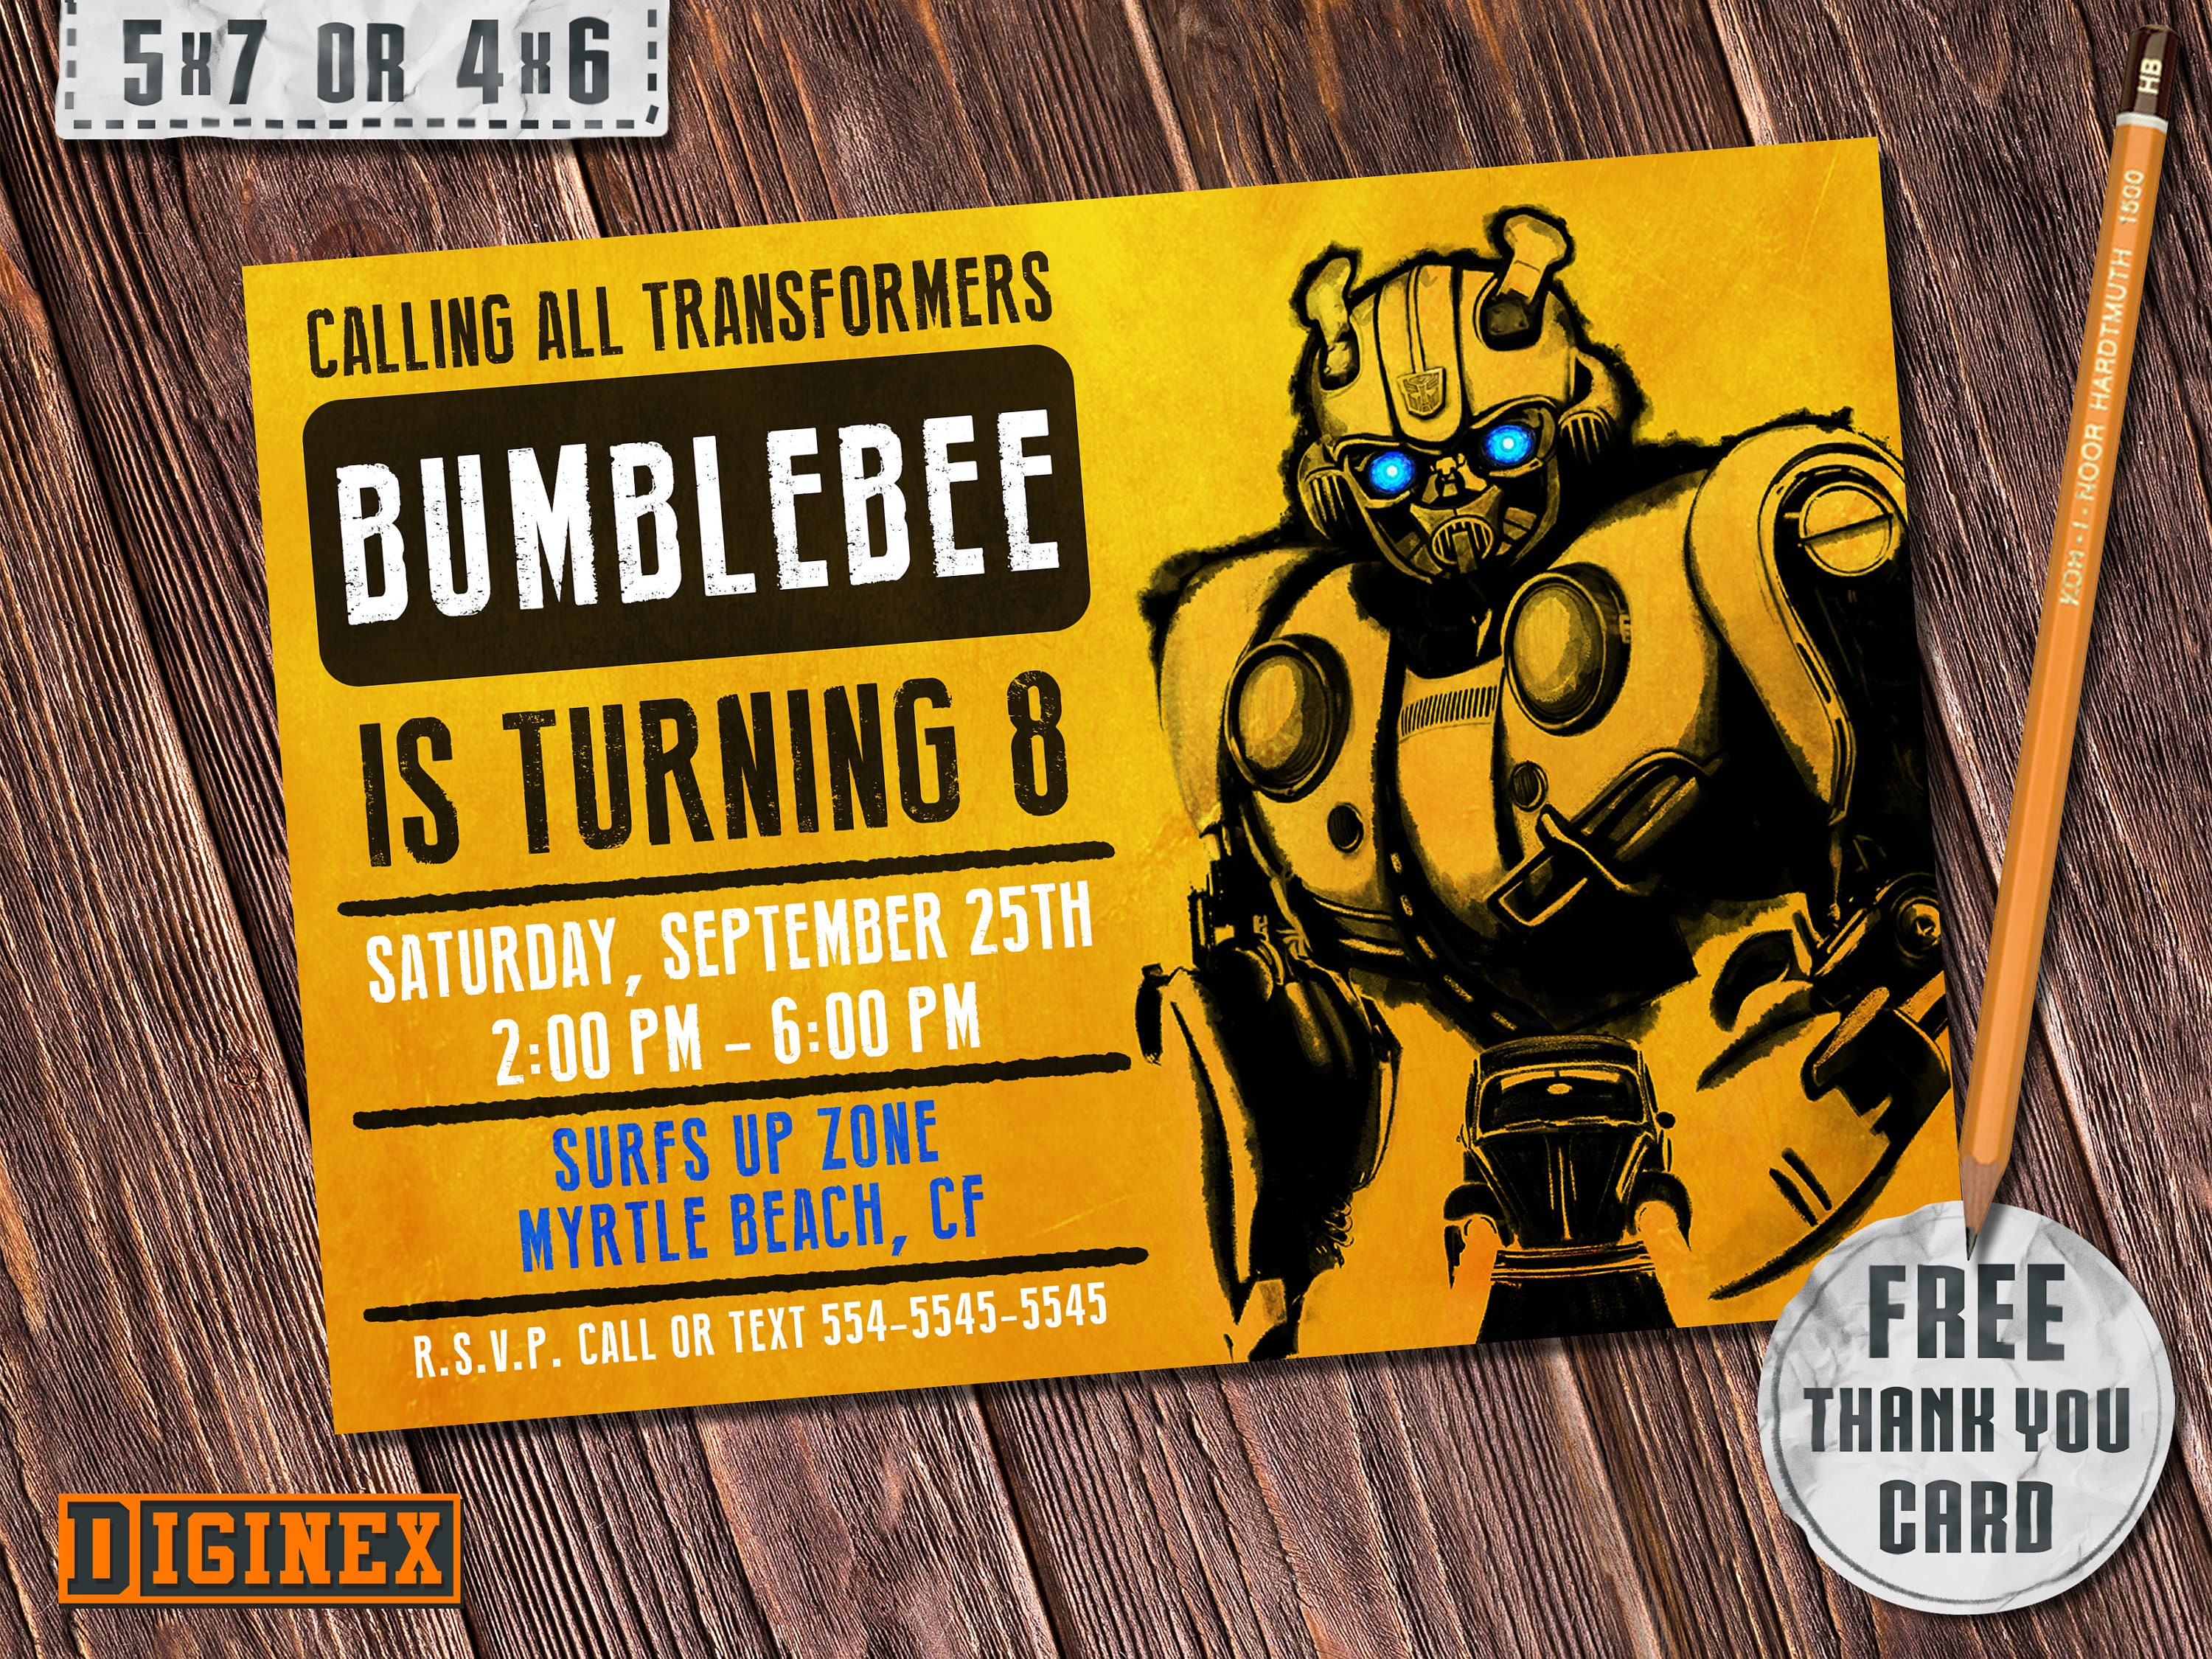 picture regarding Transformer Birthday Invitations Printable Free identified as Bumblebee Invitation, Transformers Invitation, Bumblebee Transformers Invite, Bumblebee Social gathering Invites, Bumblebee Birthday Invites